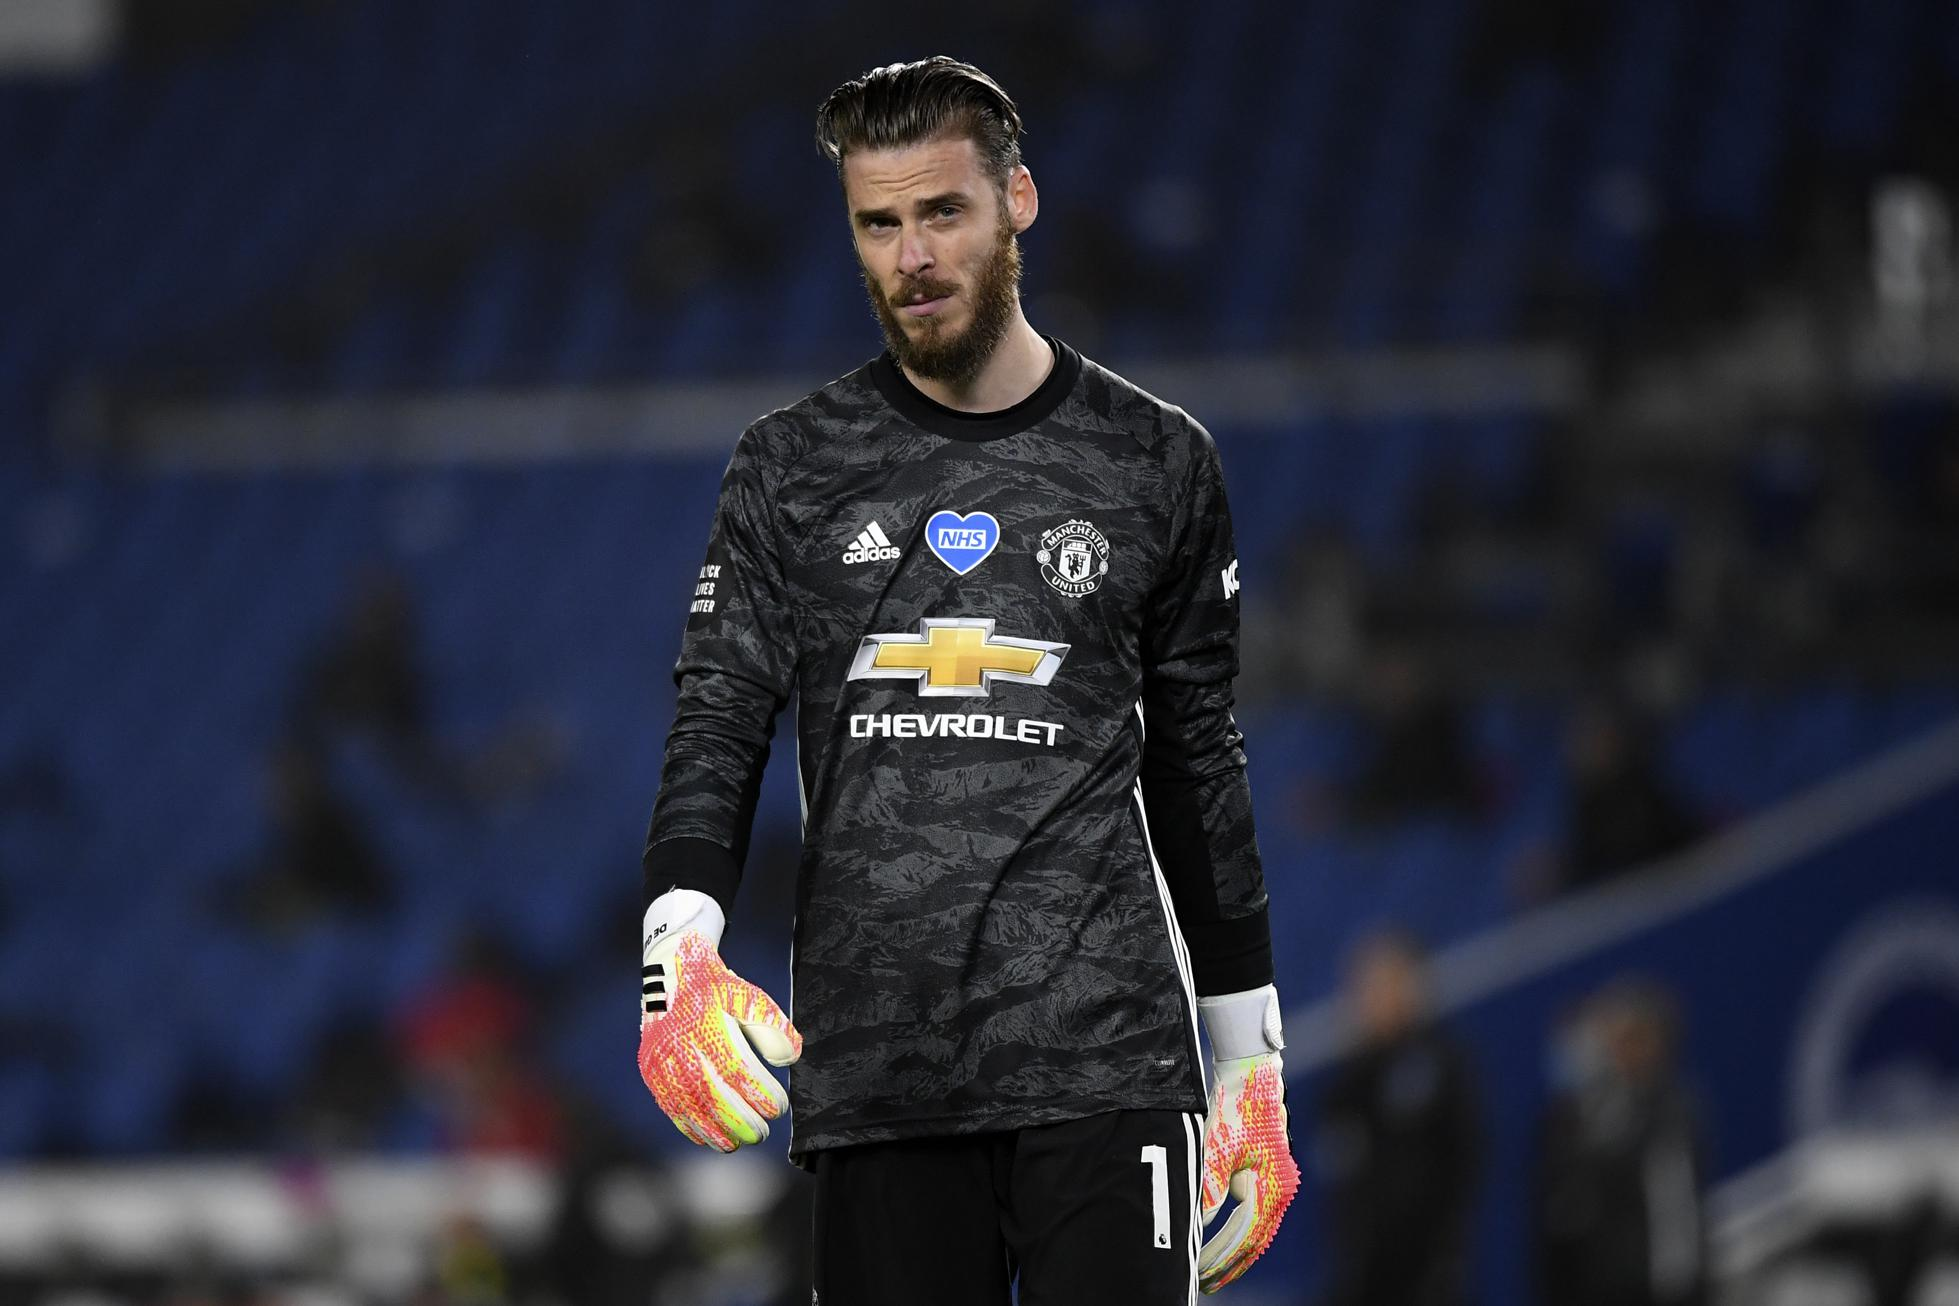 David De Gea in the goal for Manchester United.